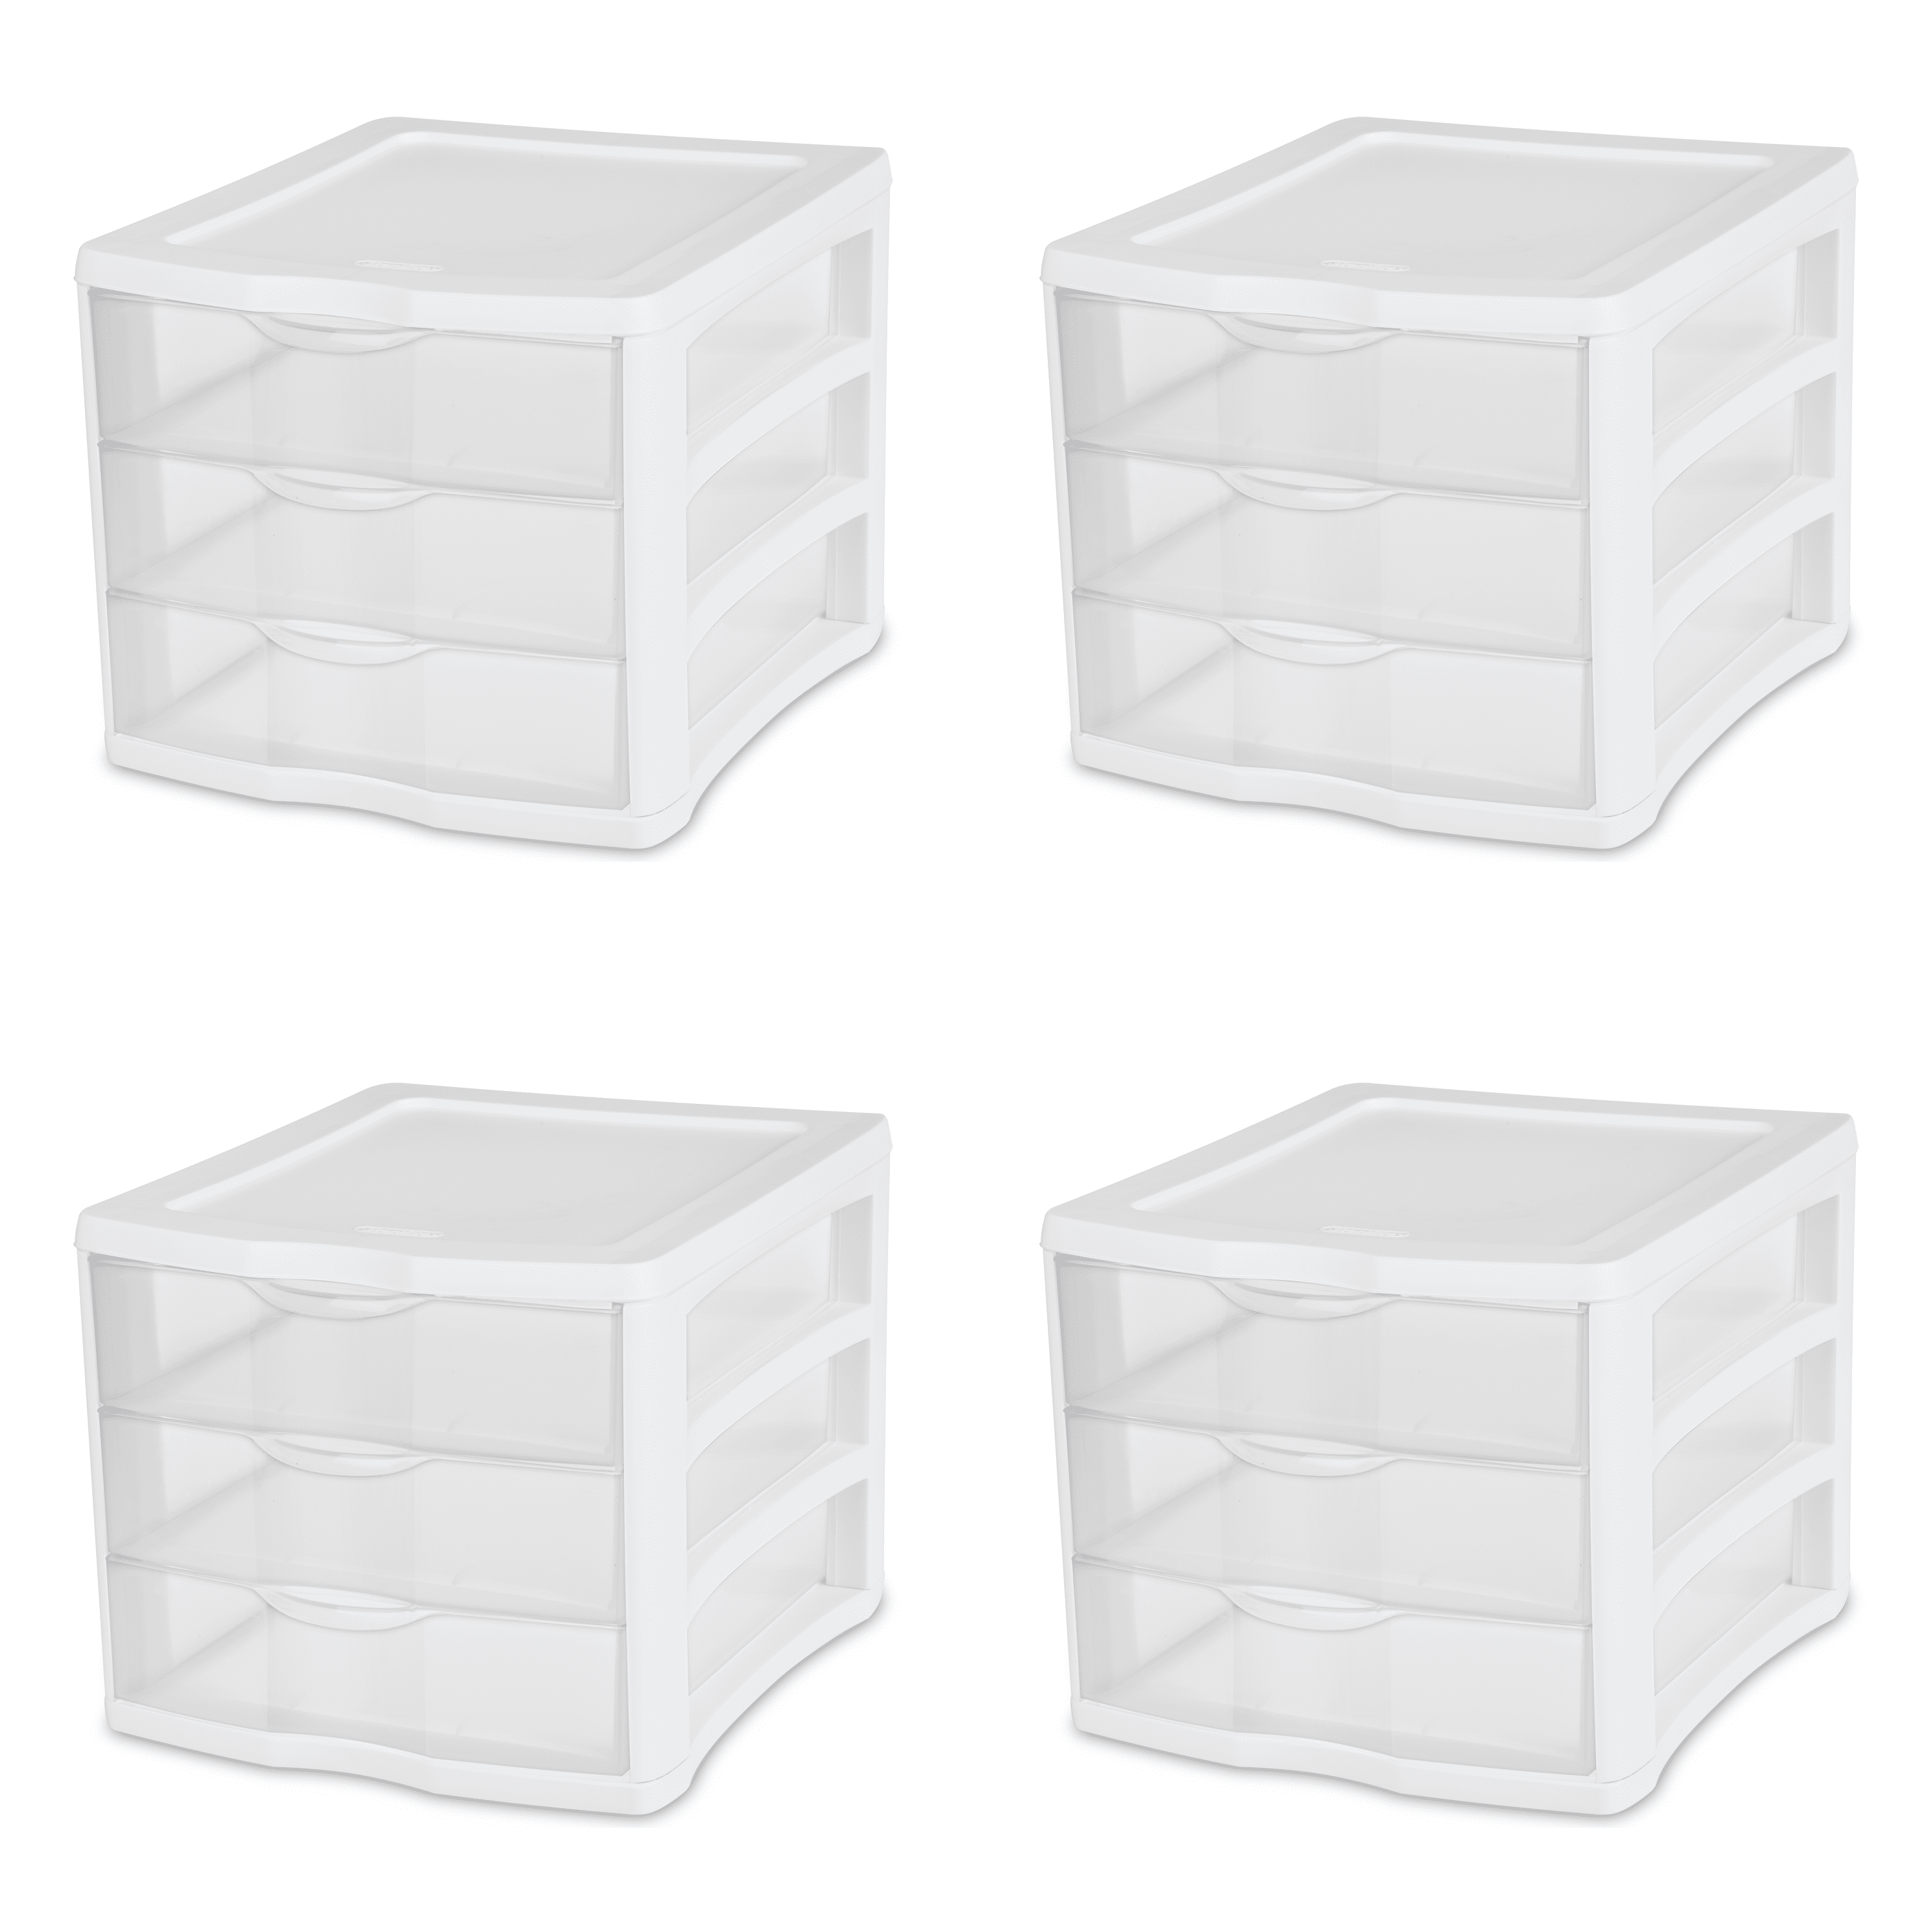 Sterilite 3-Drawer Organizer, White by Sterilite